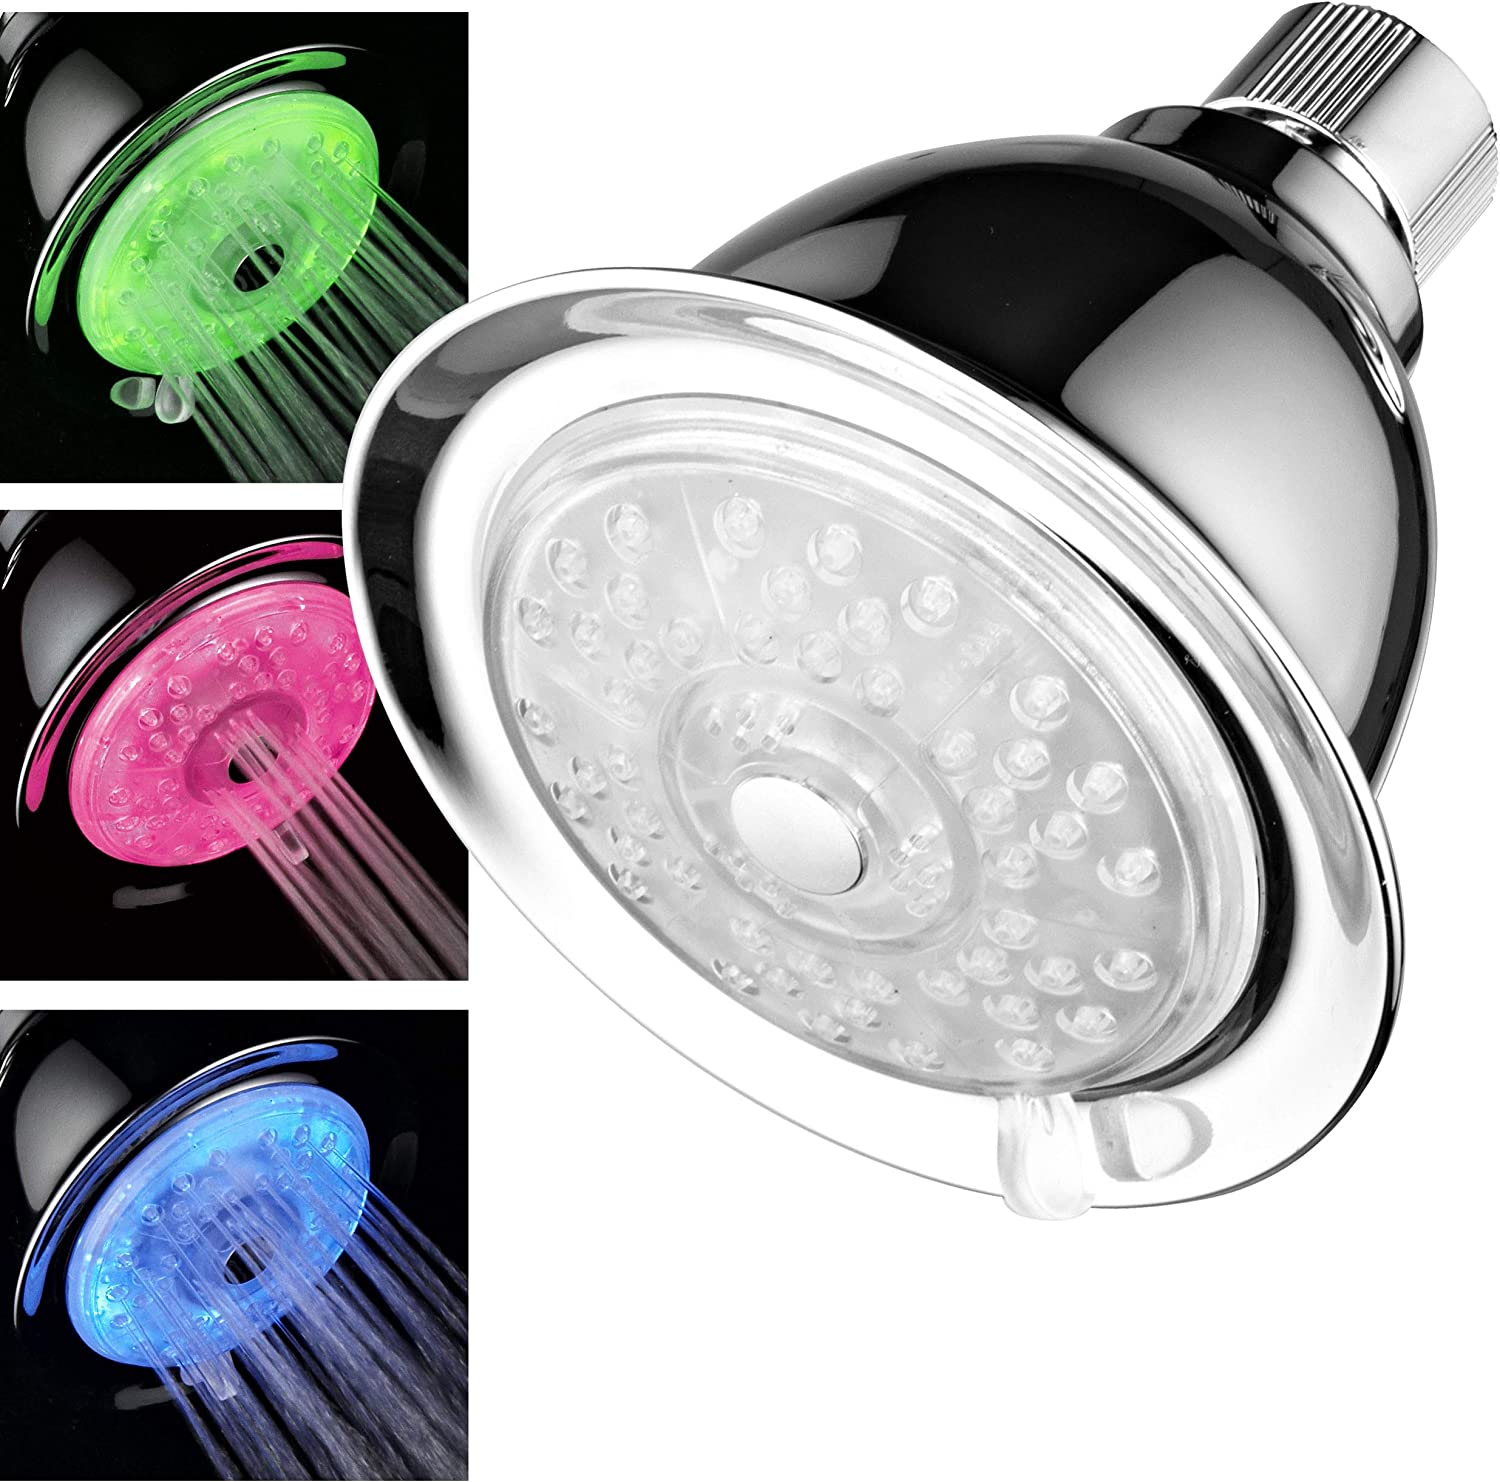 Luminex by PowerSpa 7-Color 24-Setting LED Shower Head